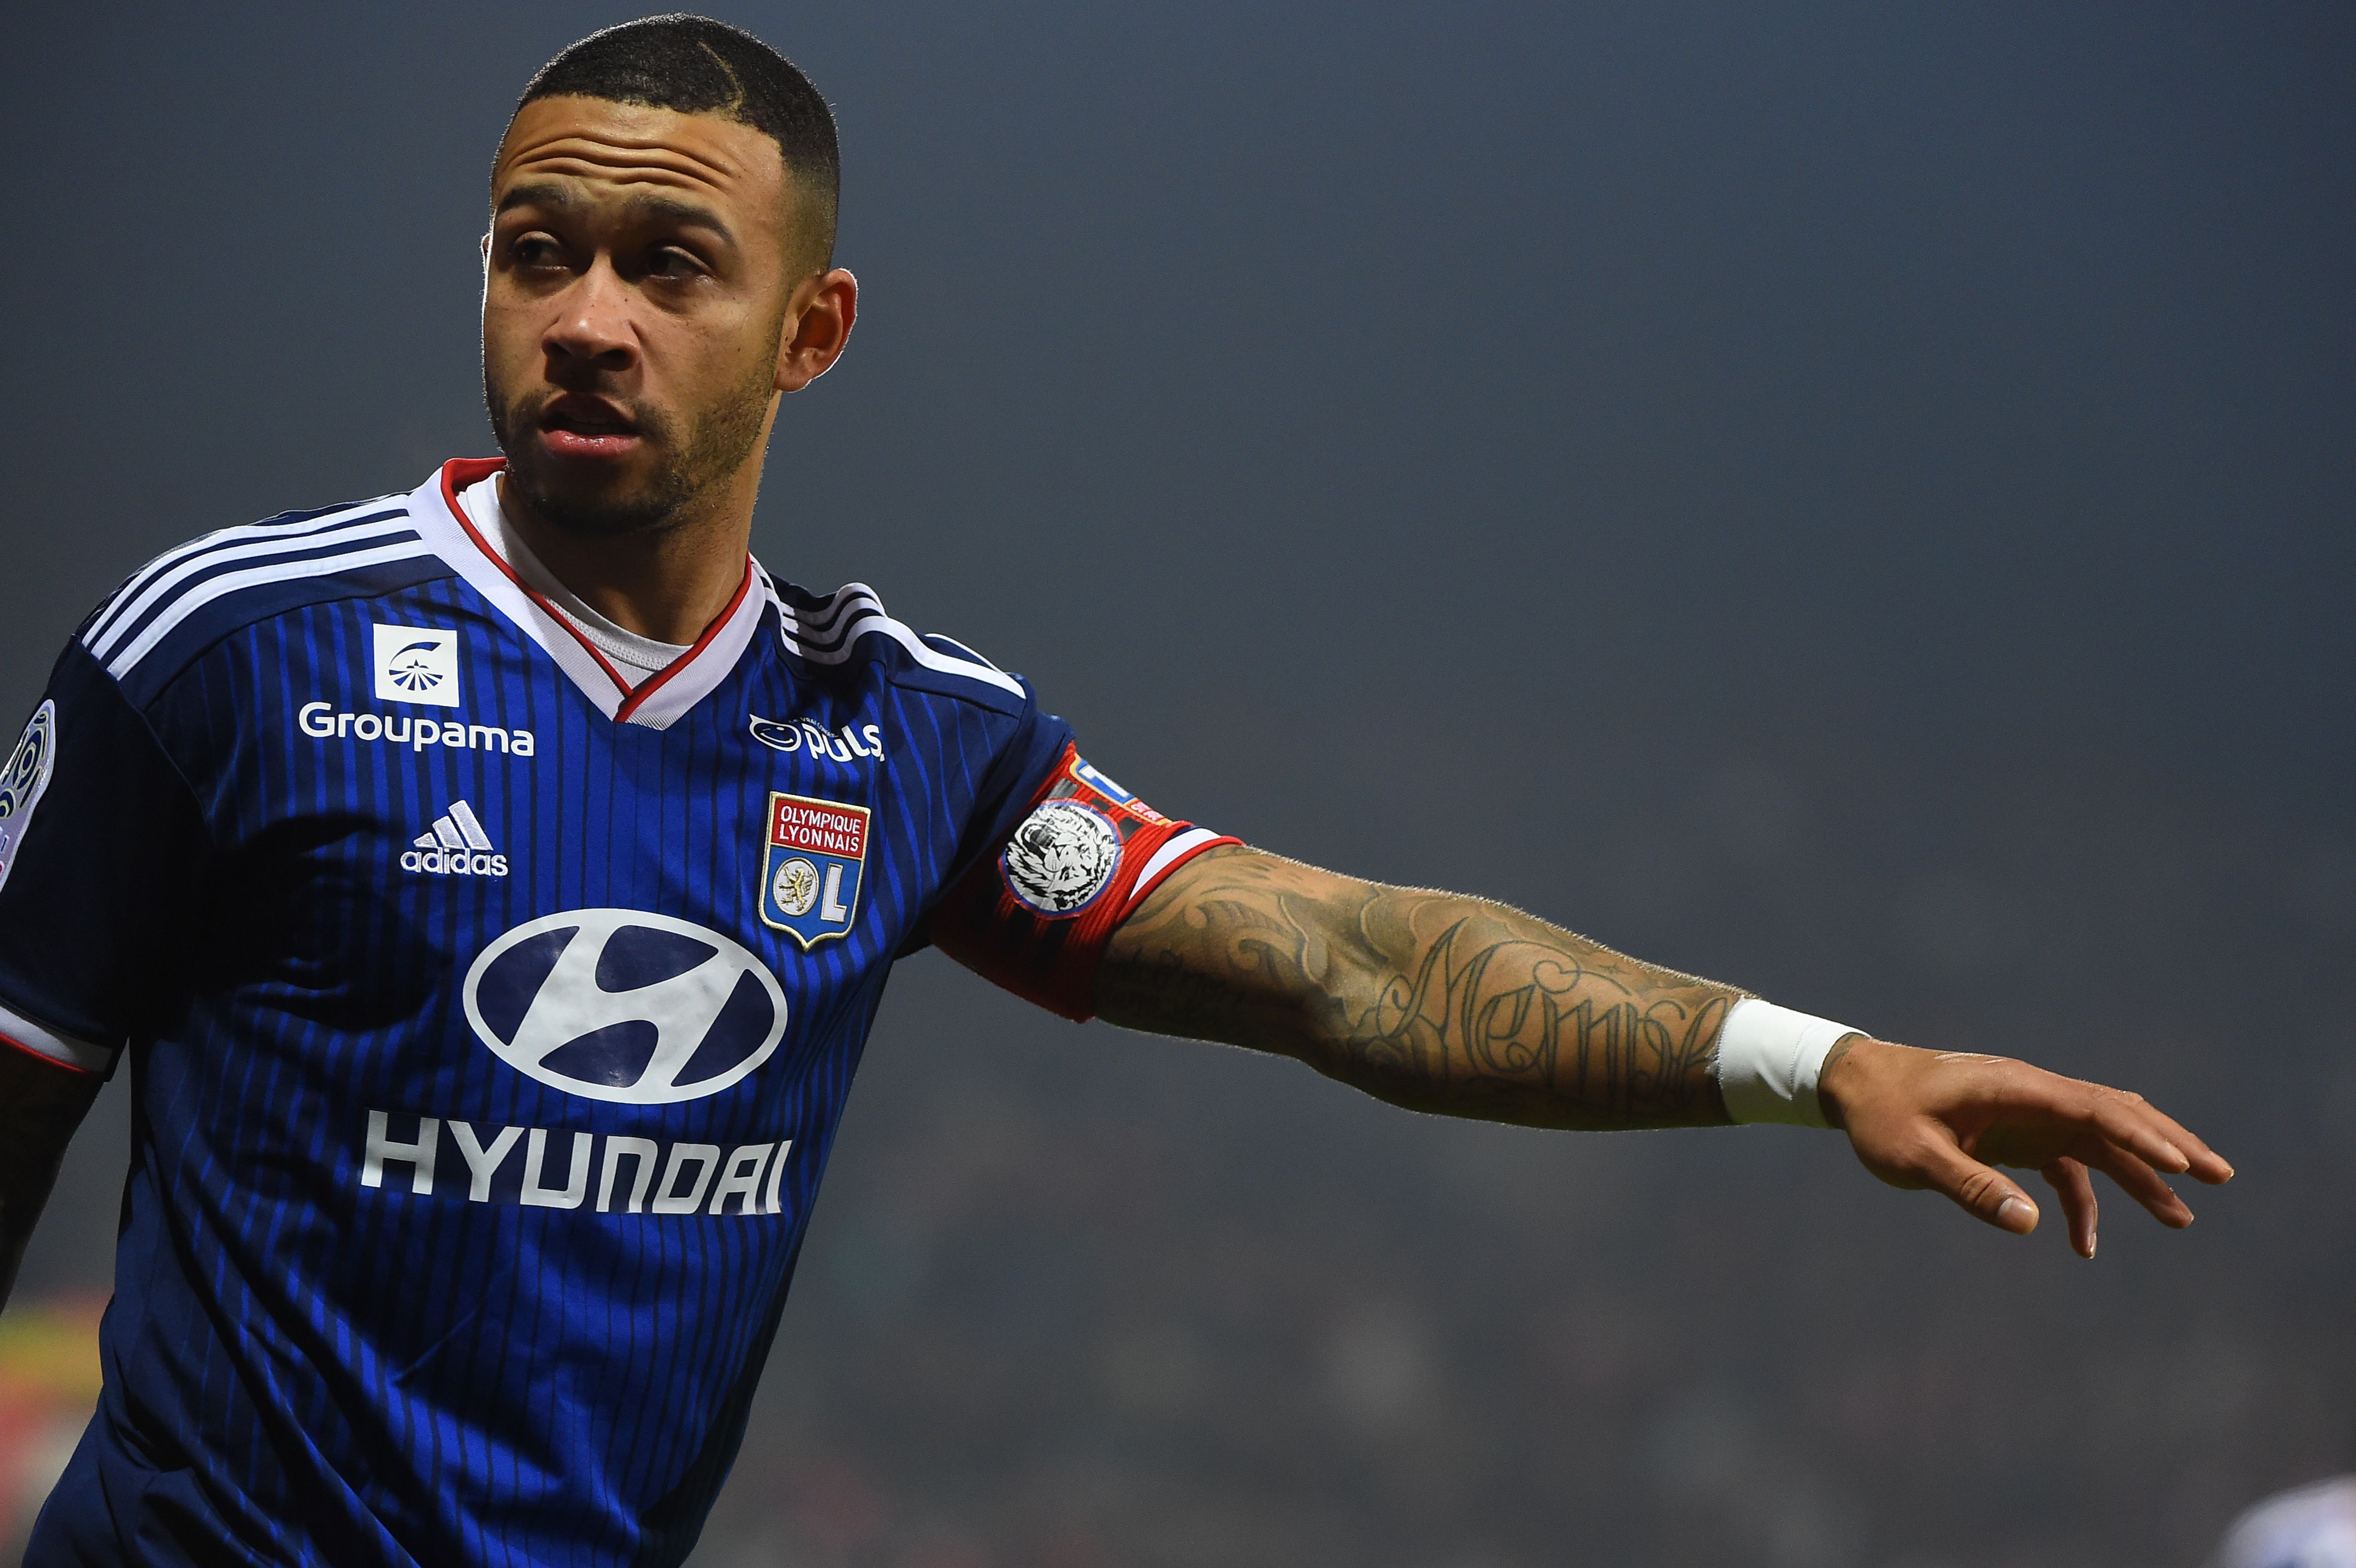 Liverpool will attempt to beat Barcelona for Memphis Depay who is seen in the photo